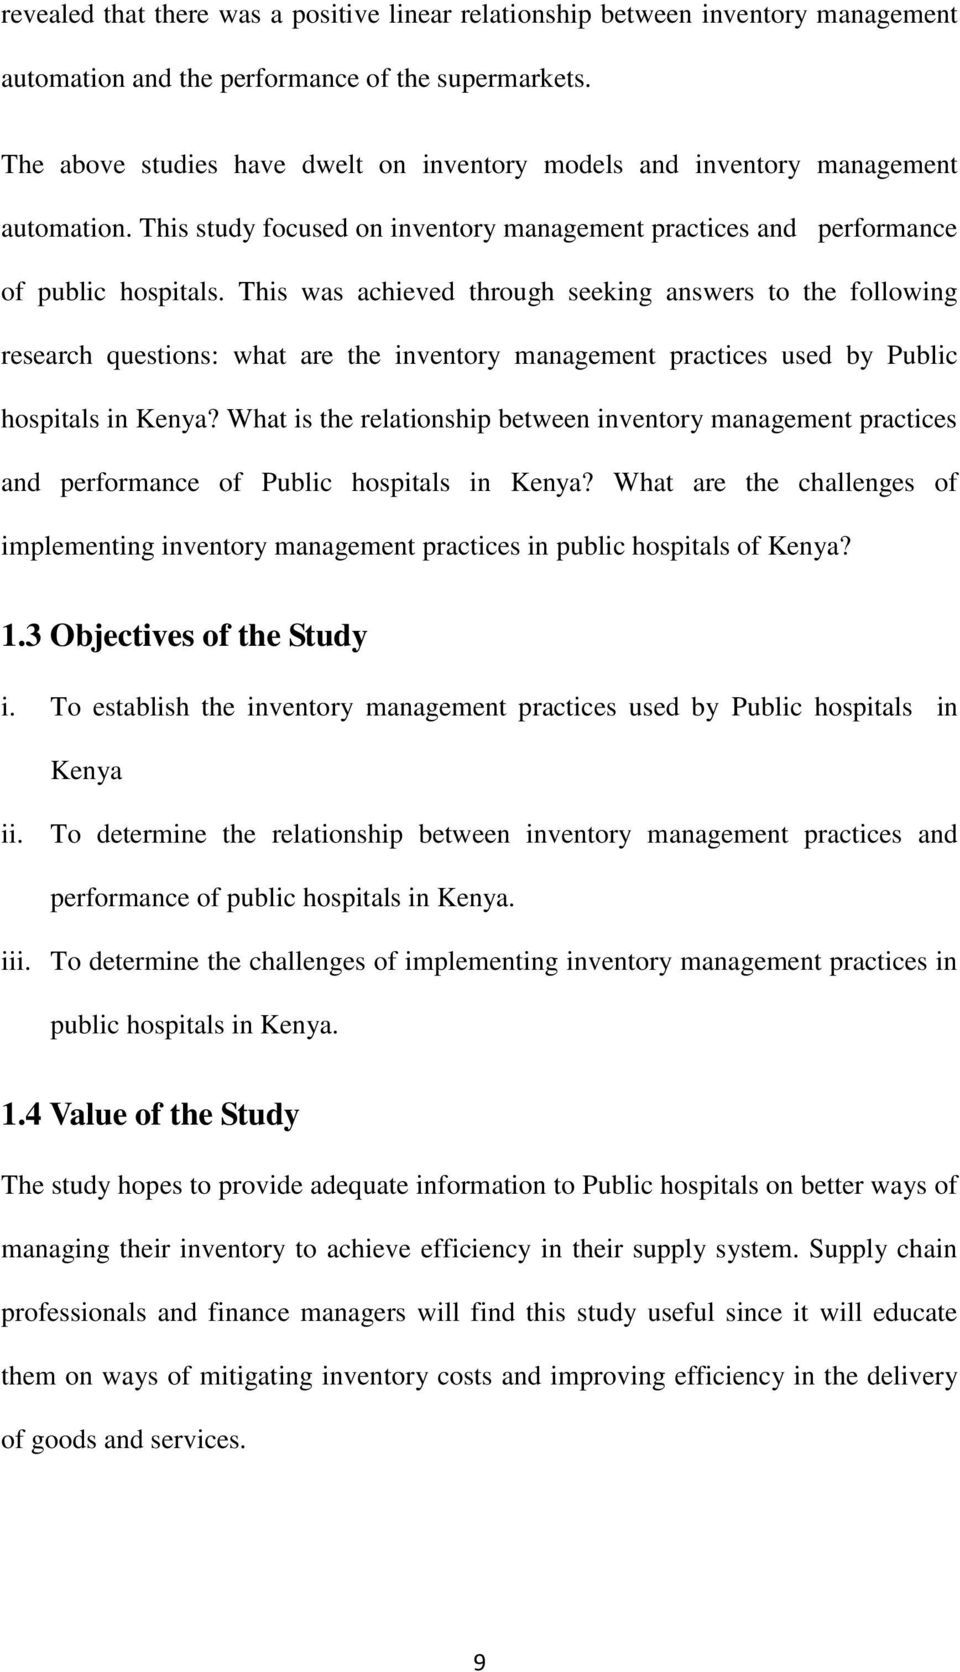 Phd thesis on inventory management